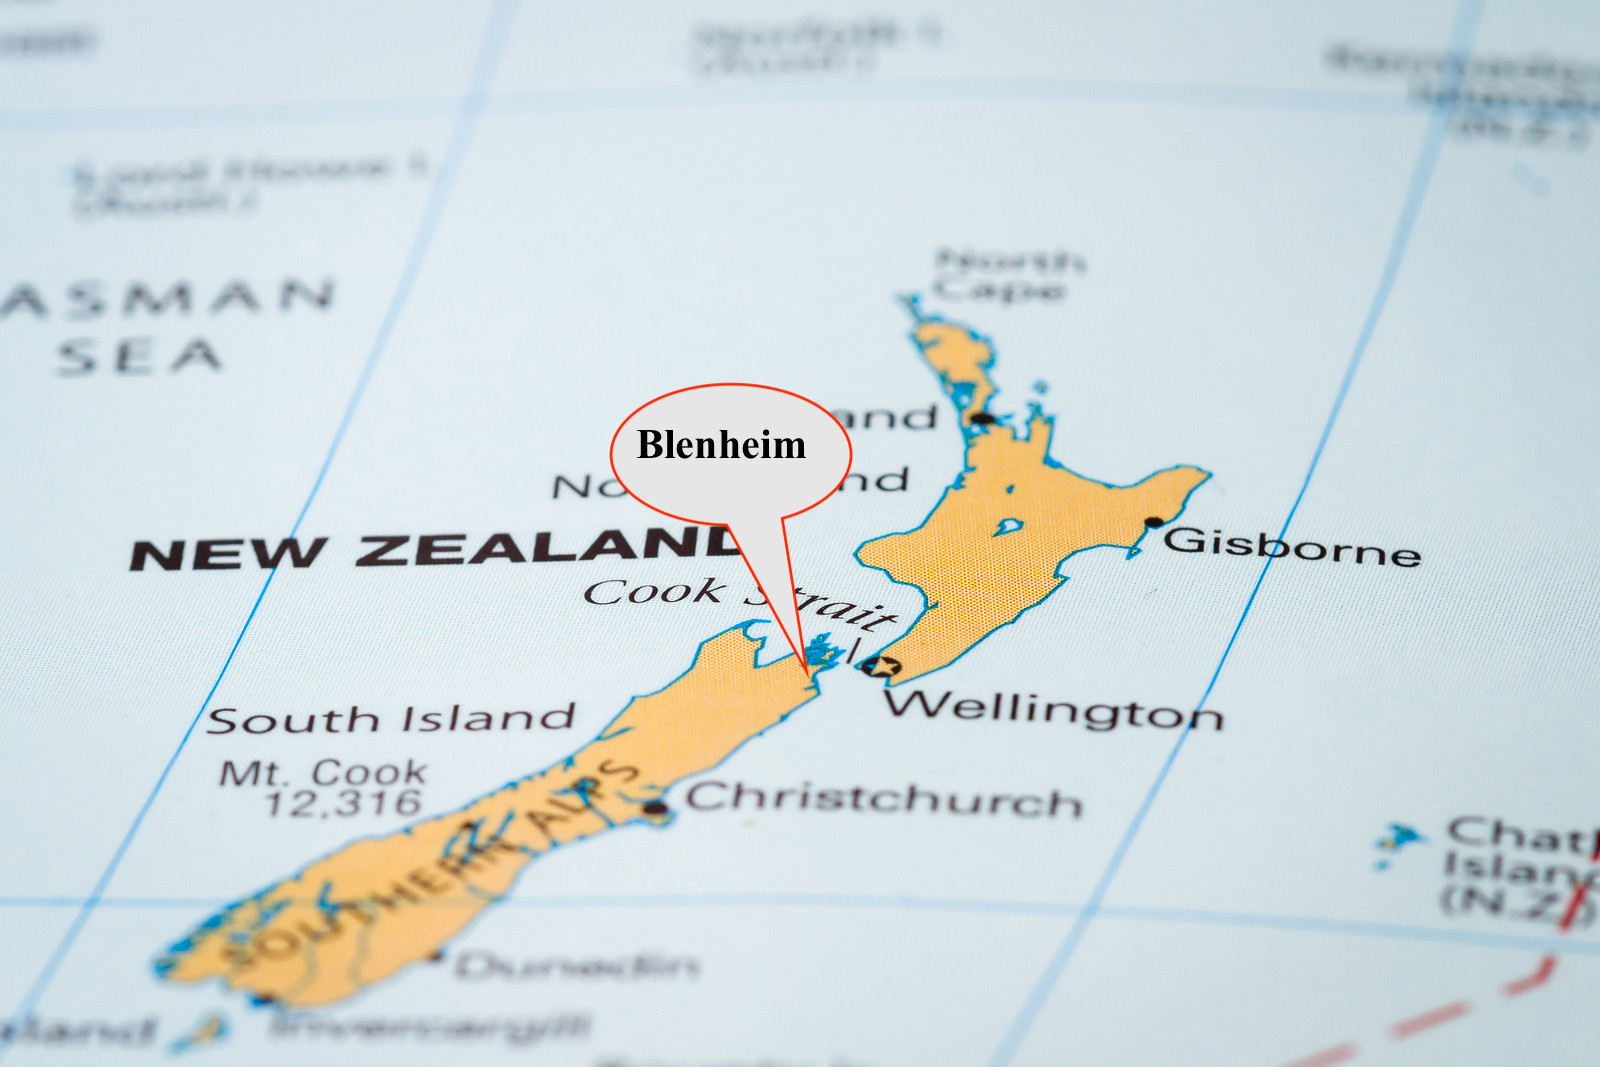 New Zealand On The Map.Blenheim New Zealand On A Map Revival Centres Church